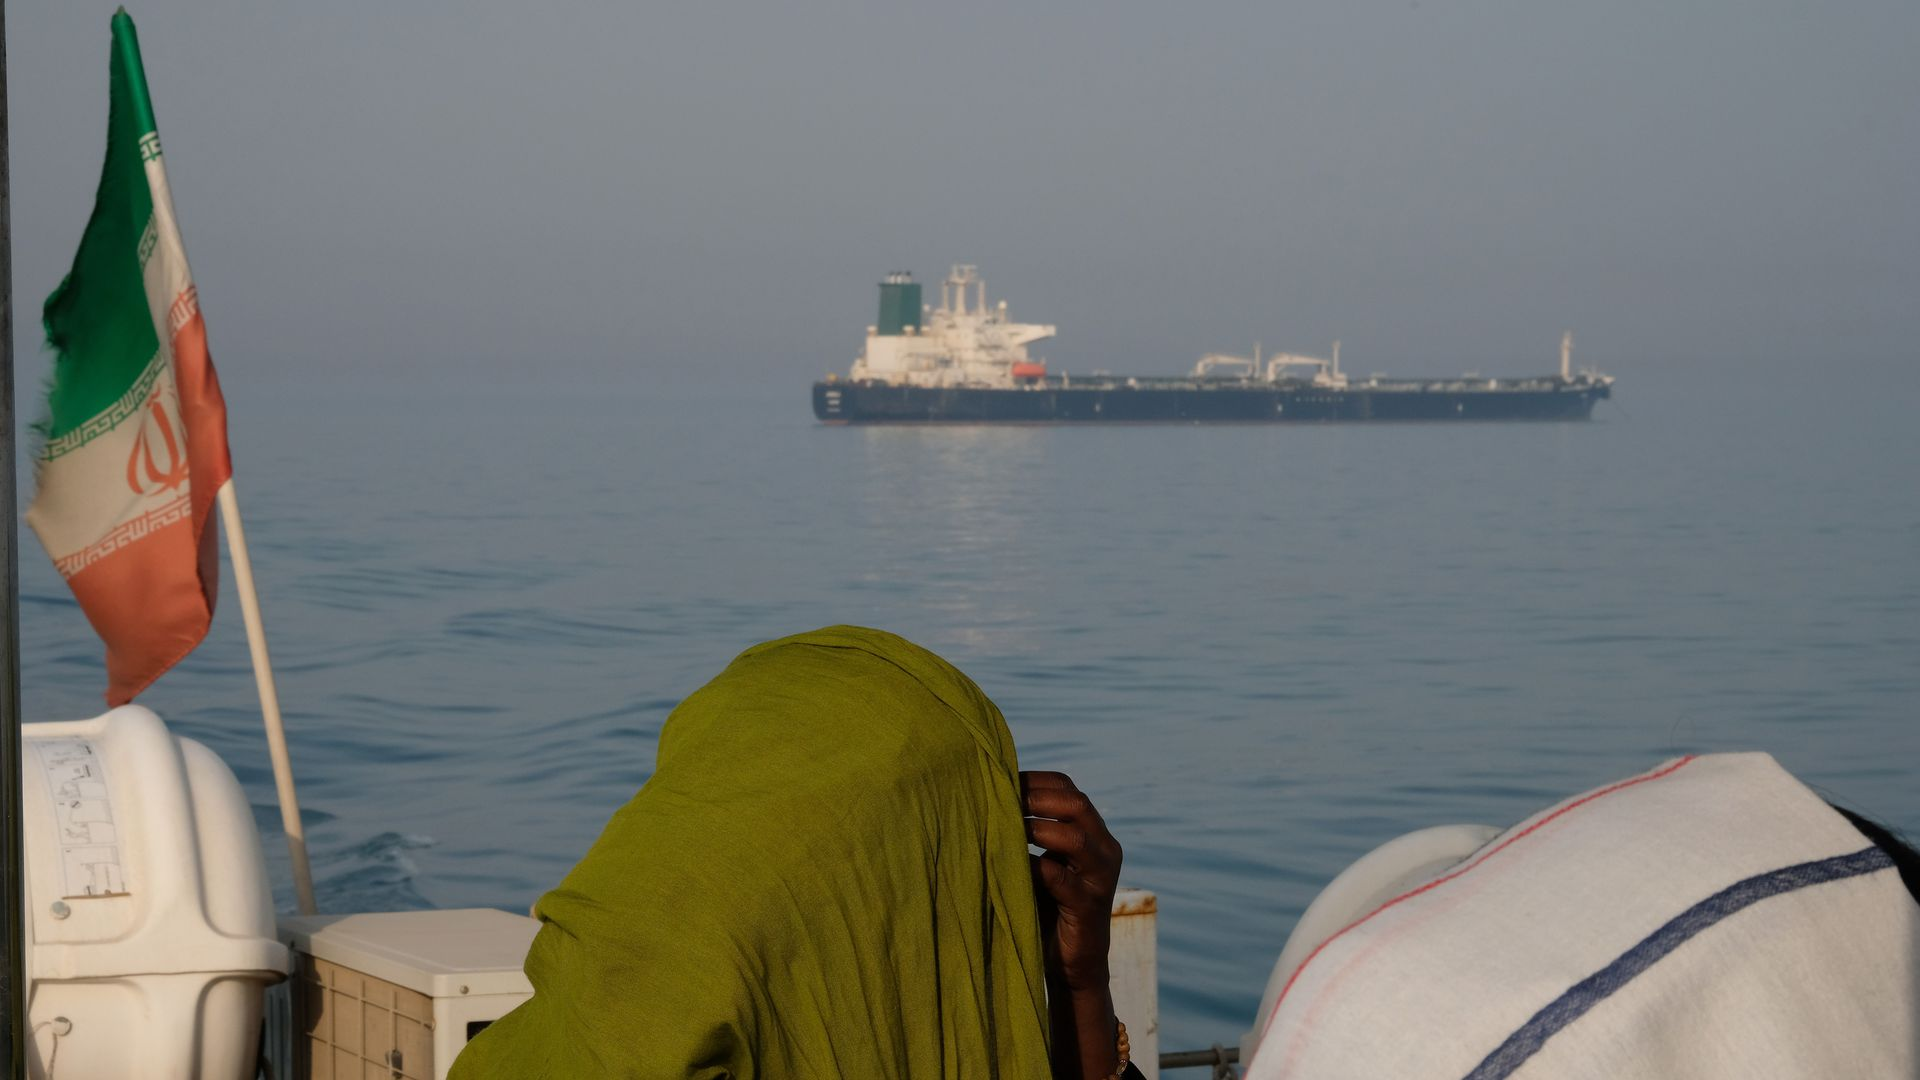 Photo of oil tanker in Hormuz Strait taken from a boat with the Iranian flag flying on it